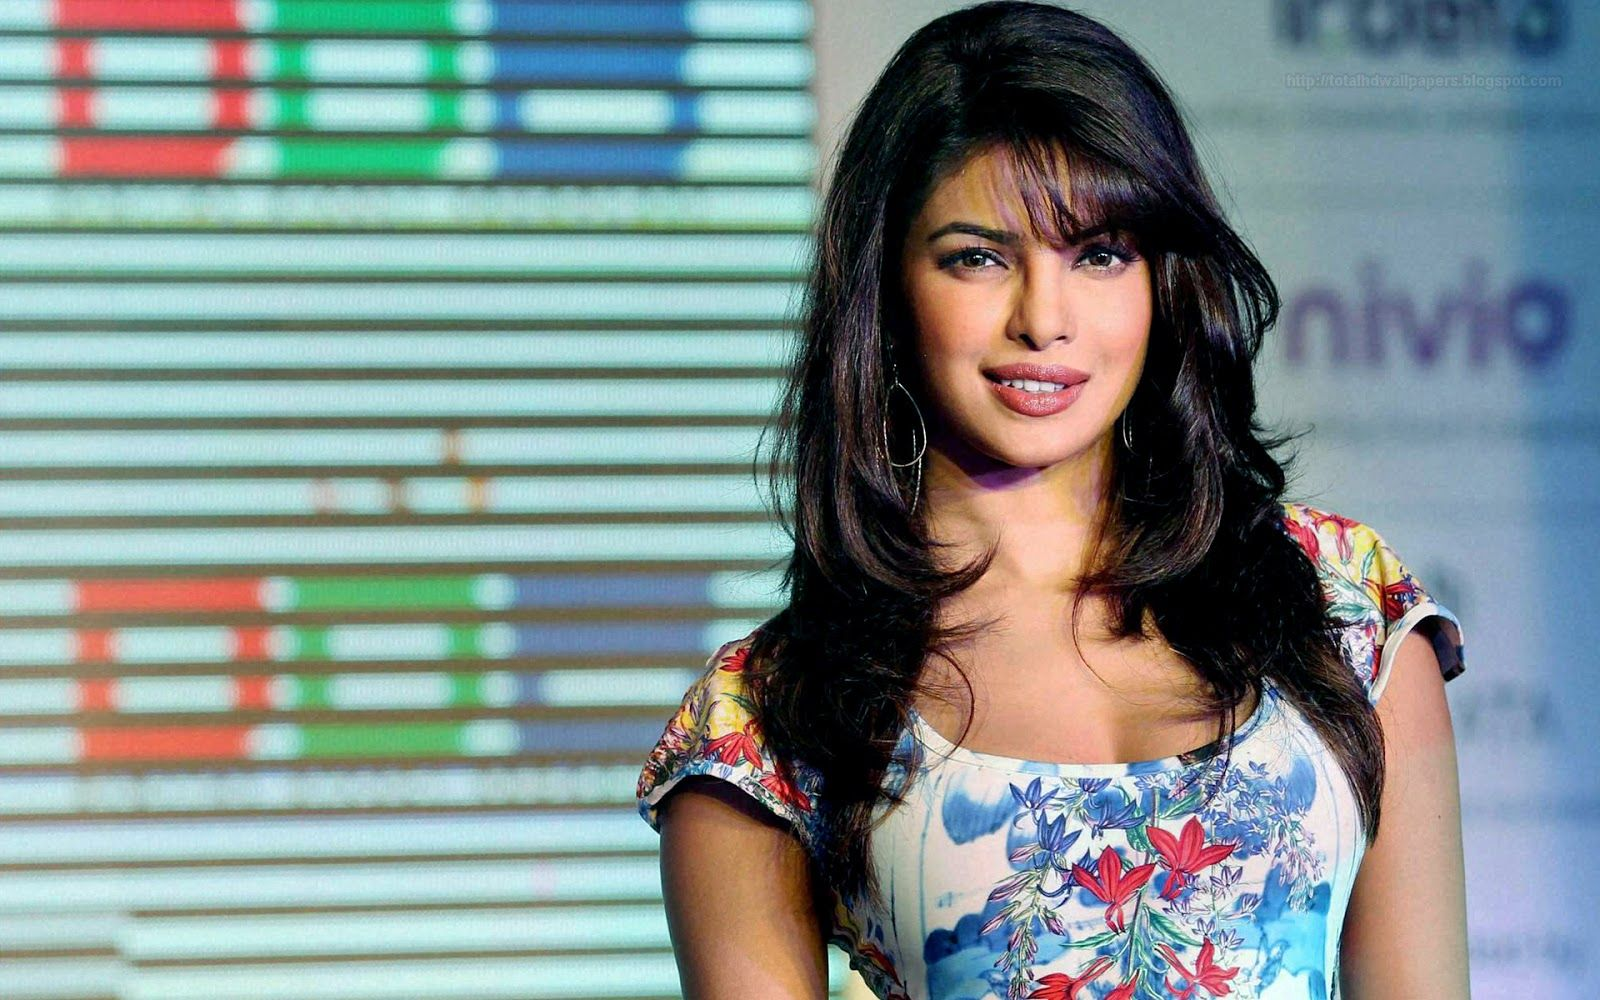 actresses hd wallpapers: bollywood actress hd wallpapers 1080p | all